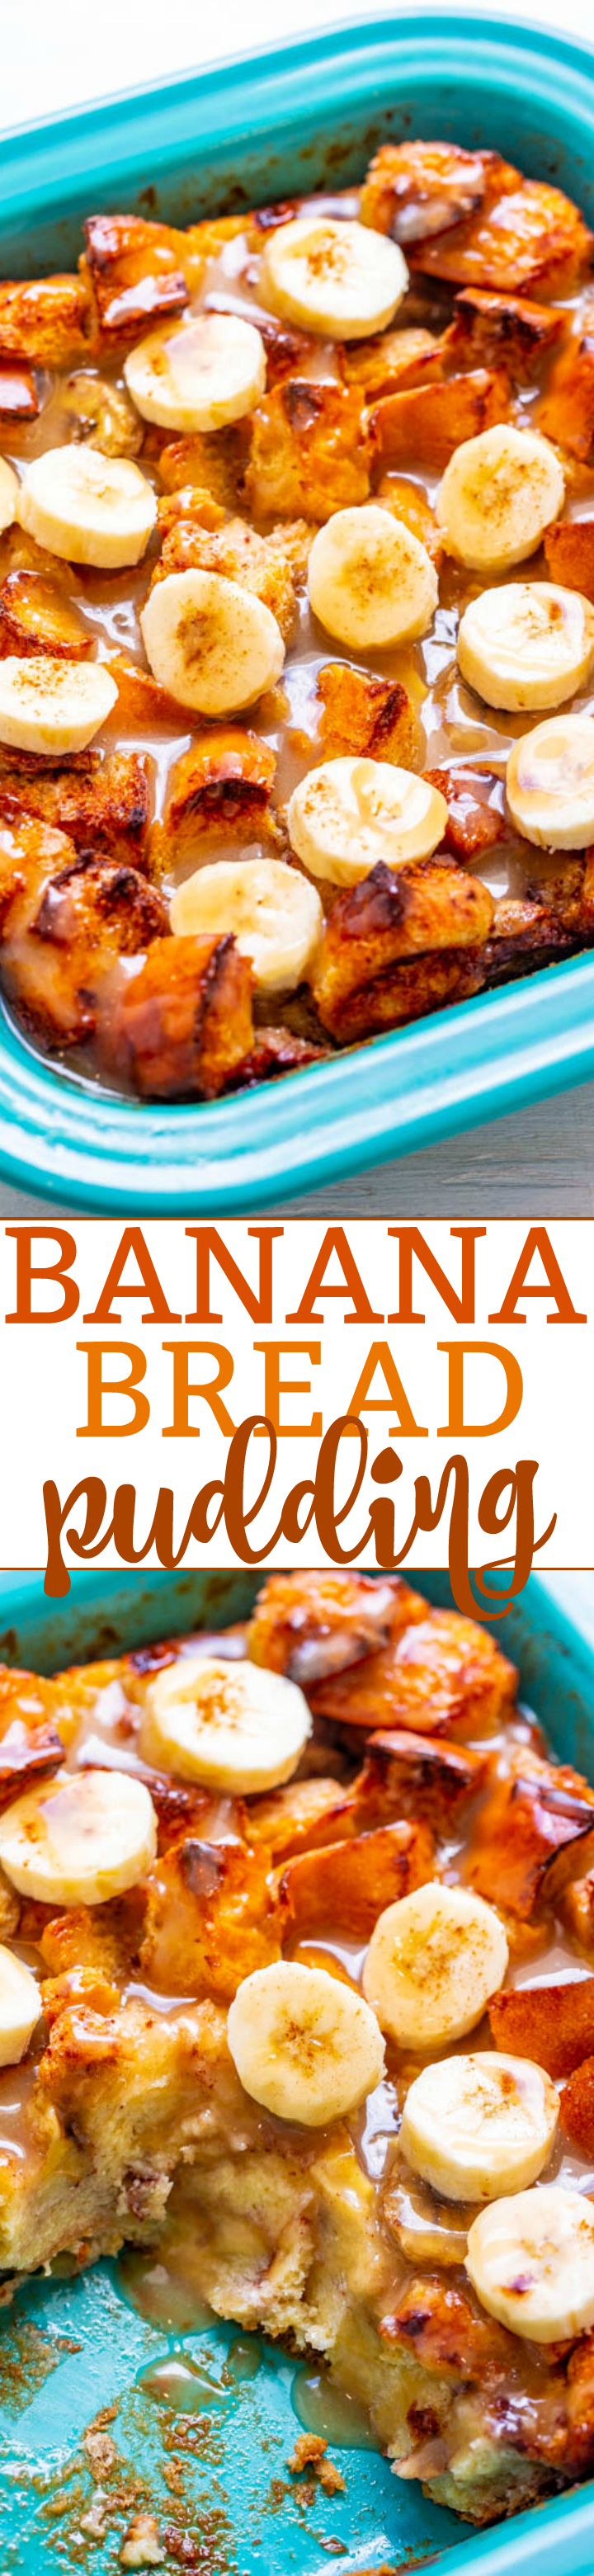 Banana Bread Pudding – Bread pudding meets banana bread in this EASY breakfast or brunch recipe that everyone will LOVE!! Firmer exterior with a custardy interior and an amazing vanilla sauce that is to-die-for!!